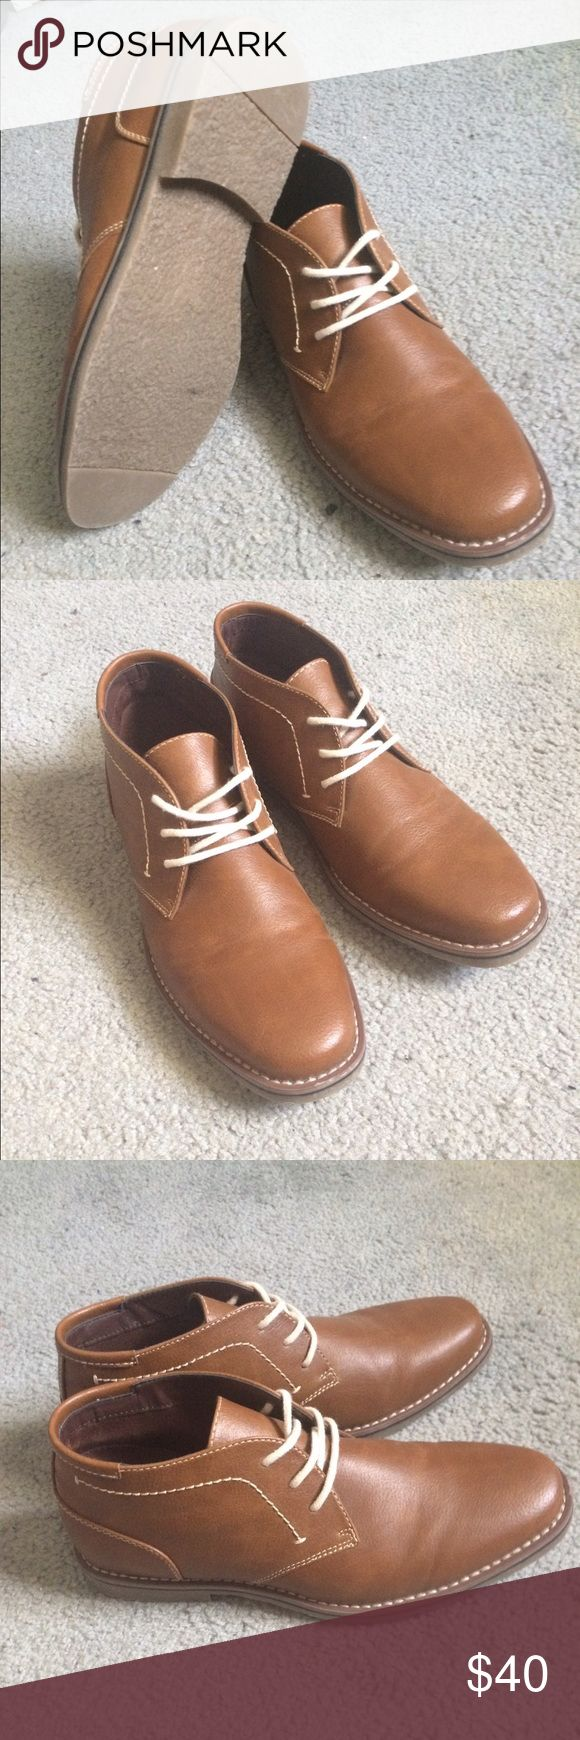 Brown Sonoma Chukka Boots - Men's 8.5 Brown leather chukka boots with white laces & white stitching. Worn once. In excellent condition. jcpenney Shoes Chukka Boots